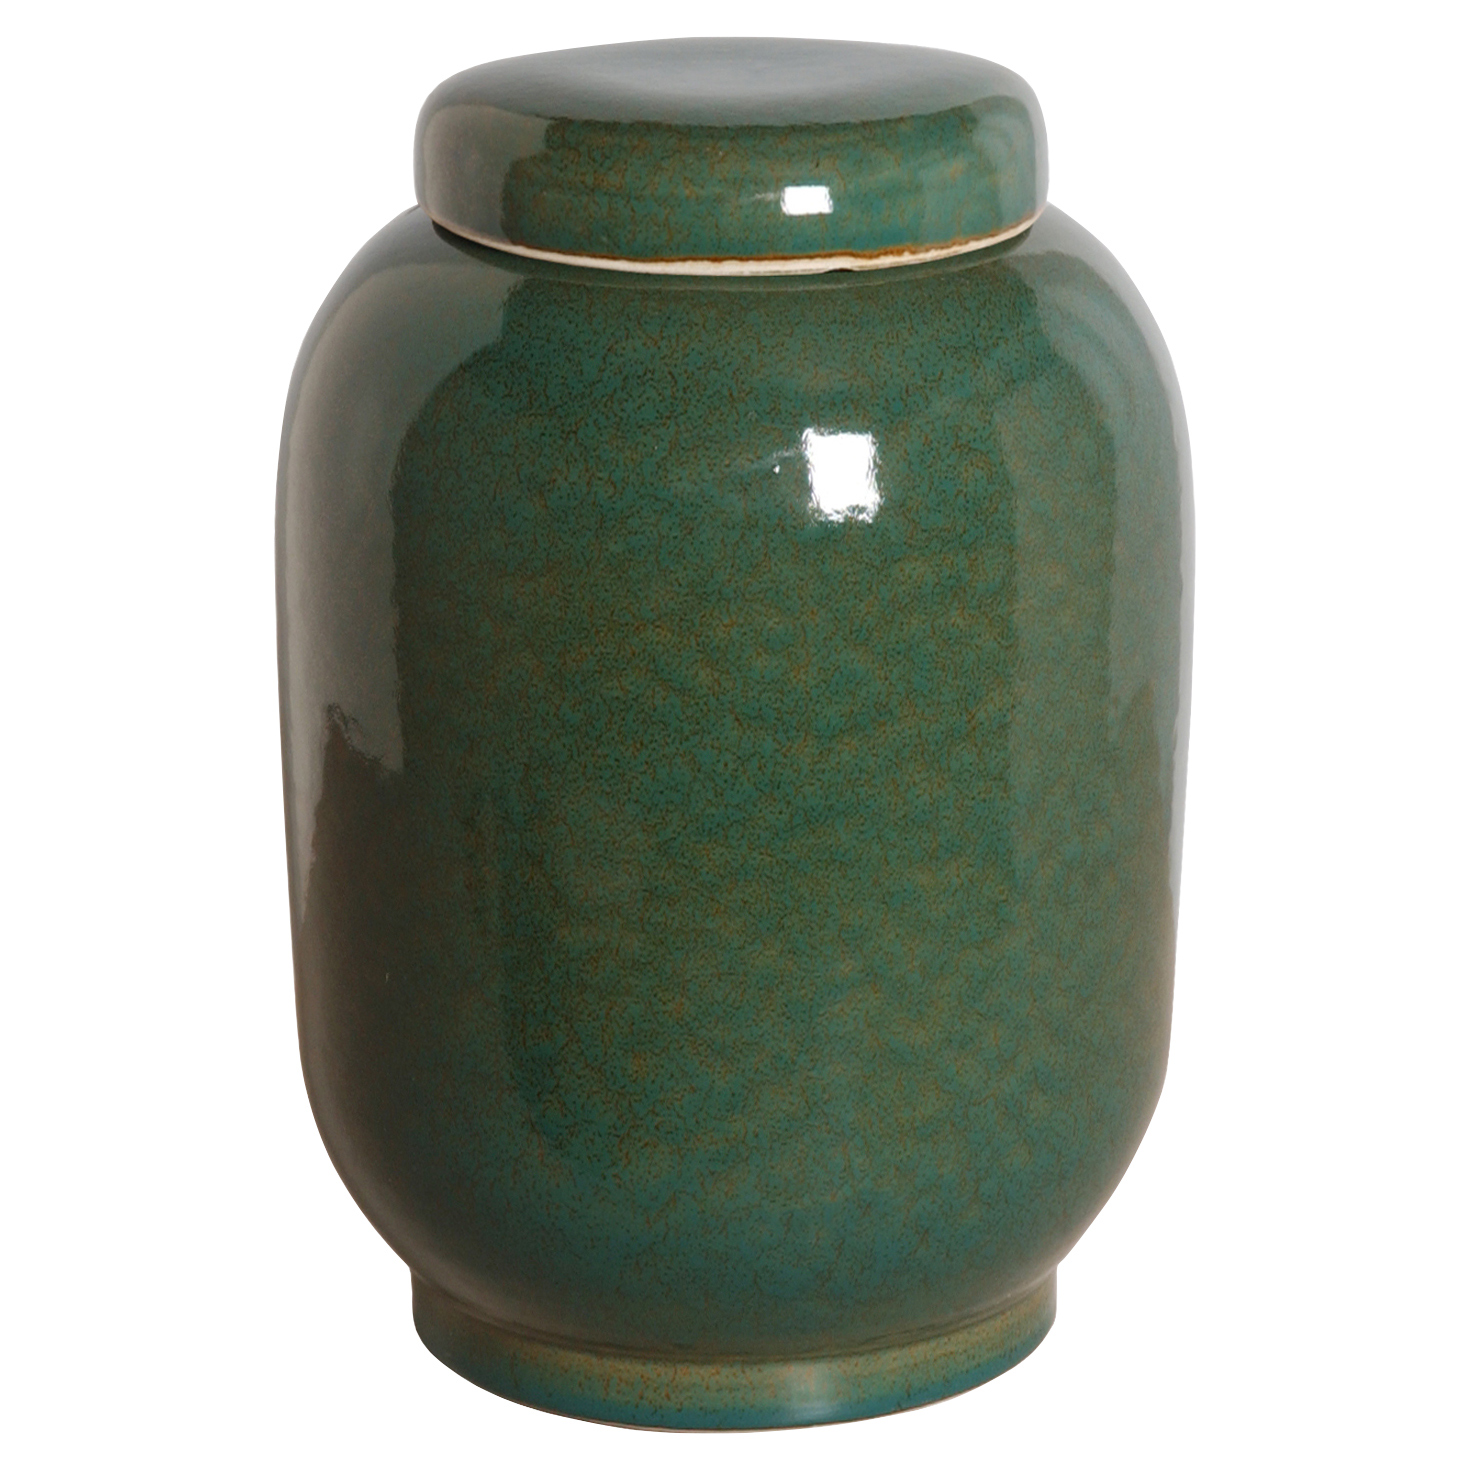 Jaego Bazaar Glazed Forest Green Ceramic Ginger Jar - 16H